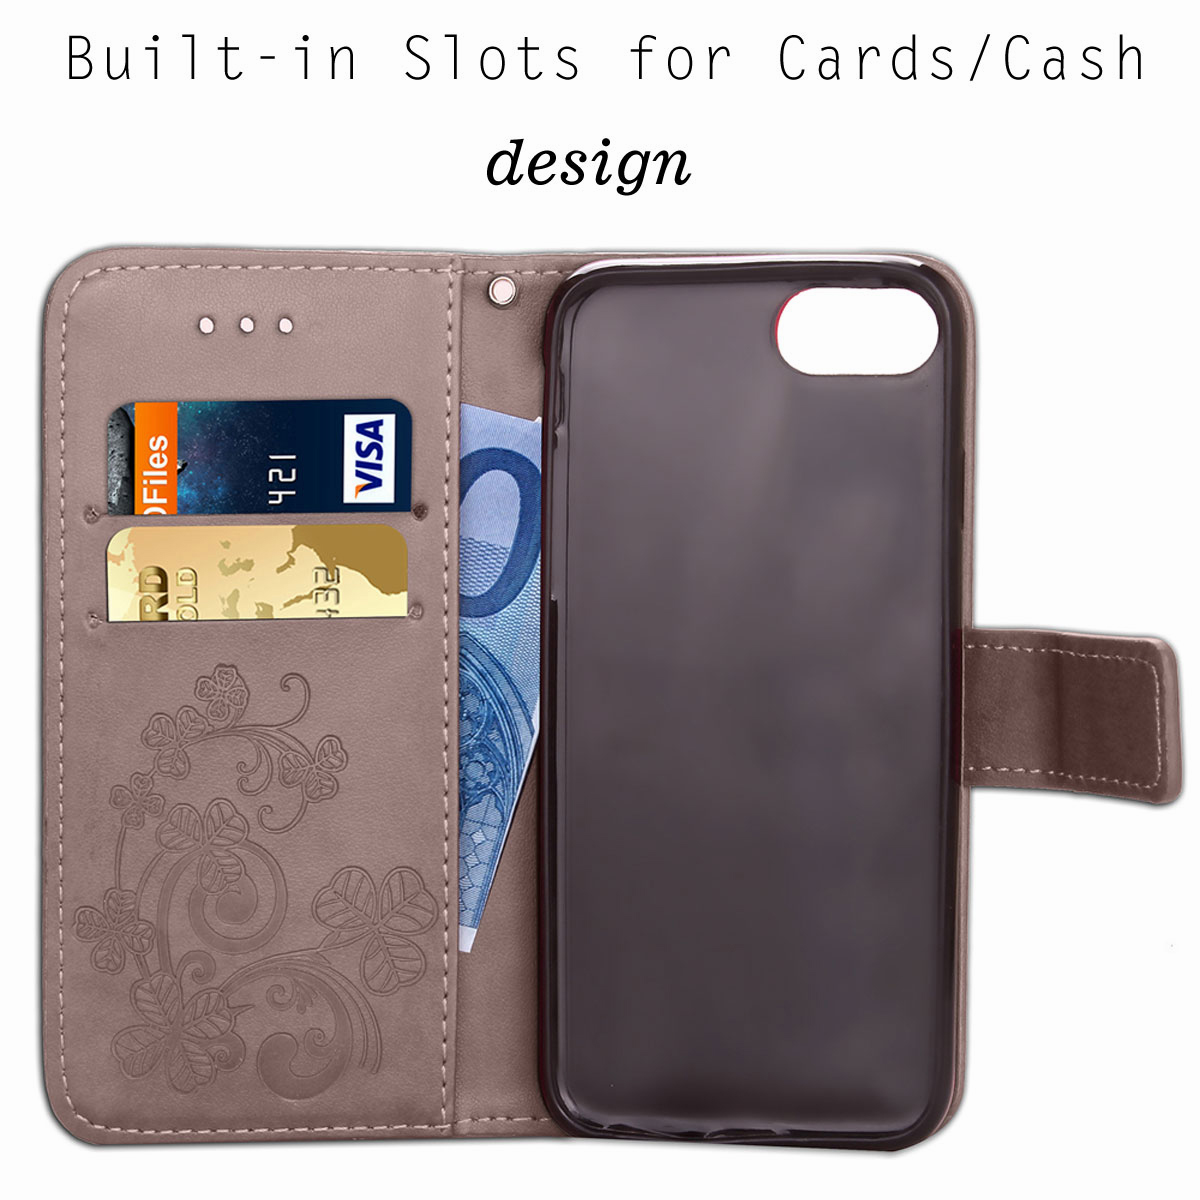 For-Apple-iPhone-Phones-Soft-Leather-Magnetic-Wallet-Card-Holder-Sim-Case-Cover thumbnail 36